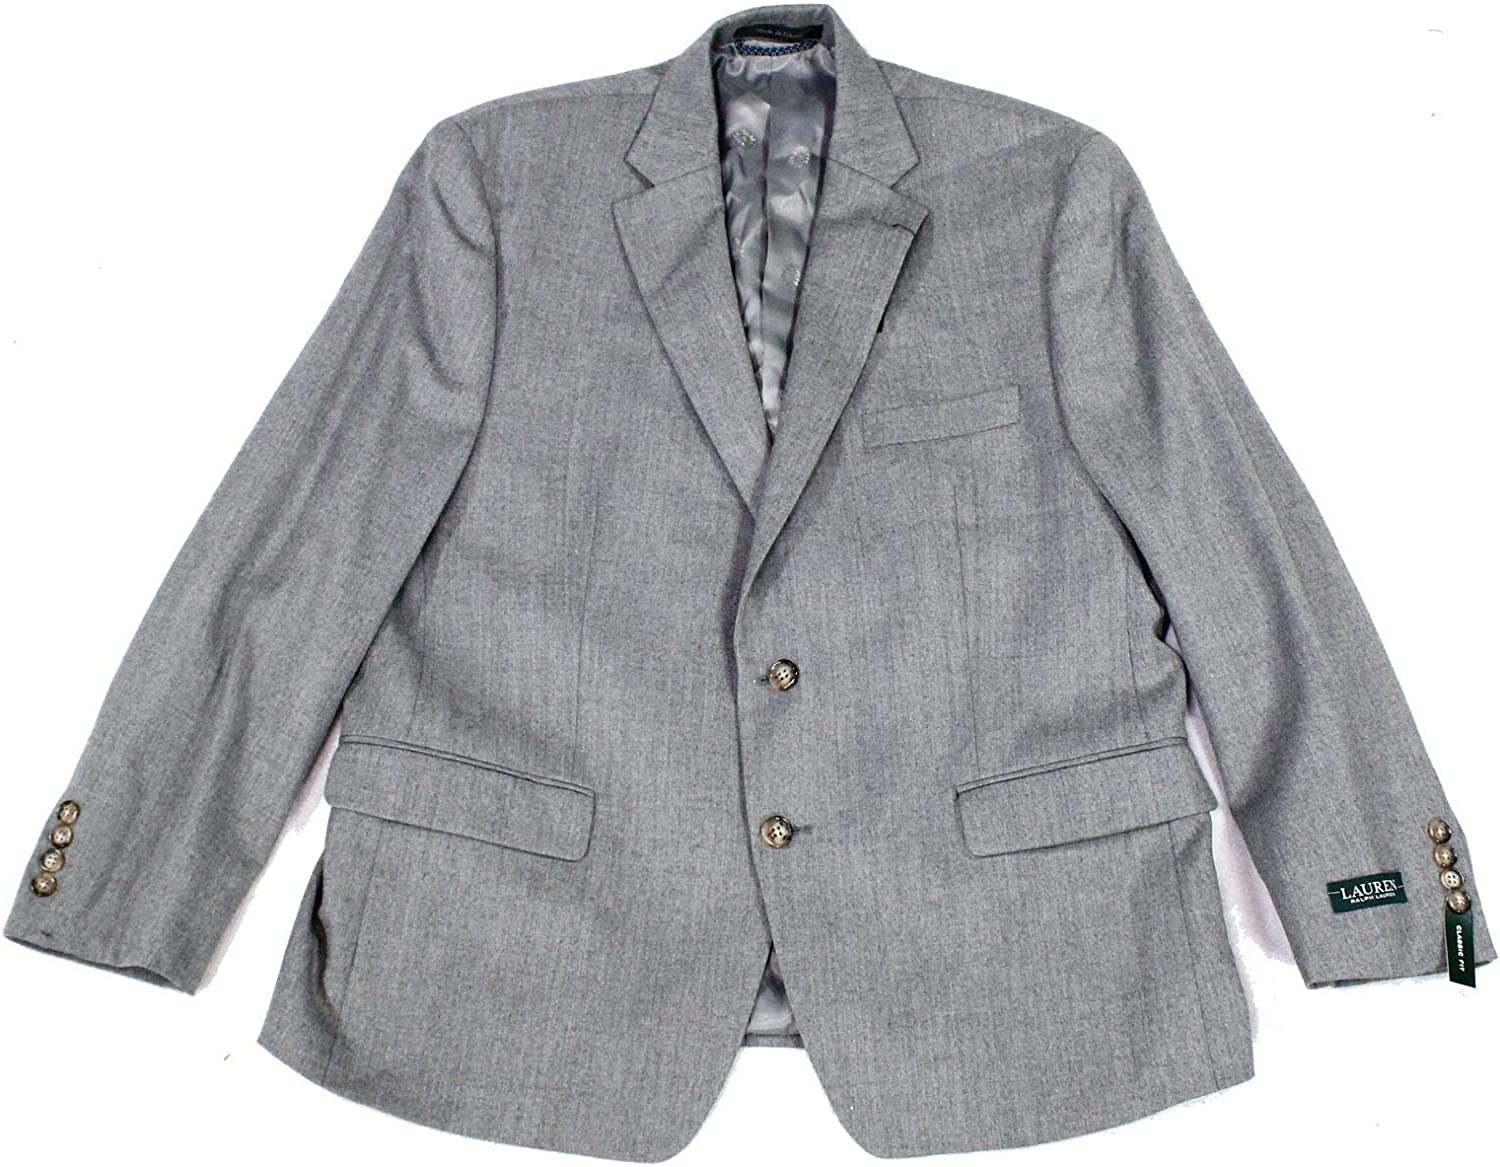 Lauren by Ralph Mens Sports Classic X-Long Coat Free Shipping New Gray Fit Recommendation